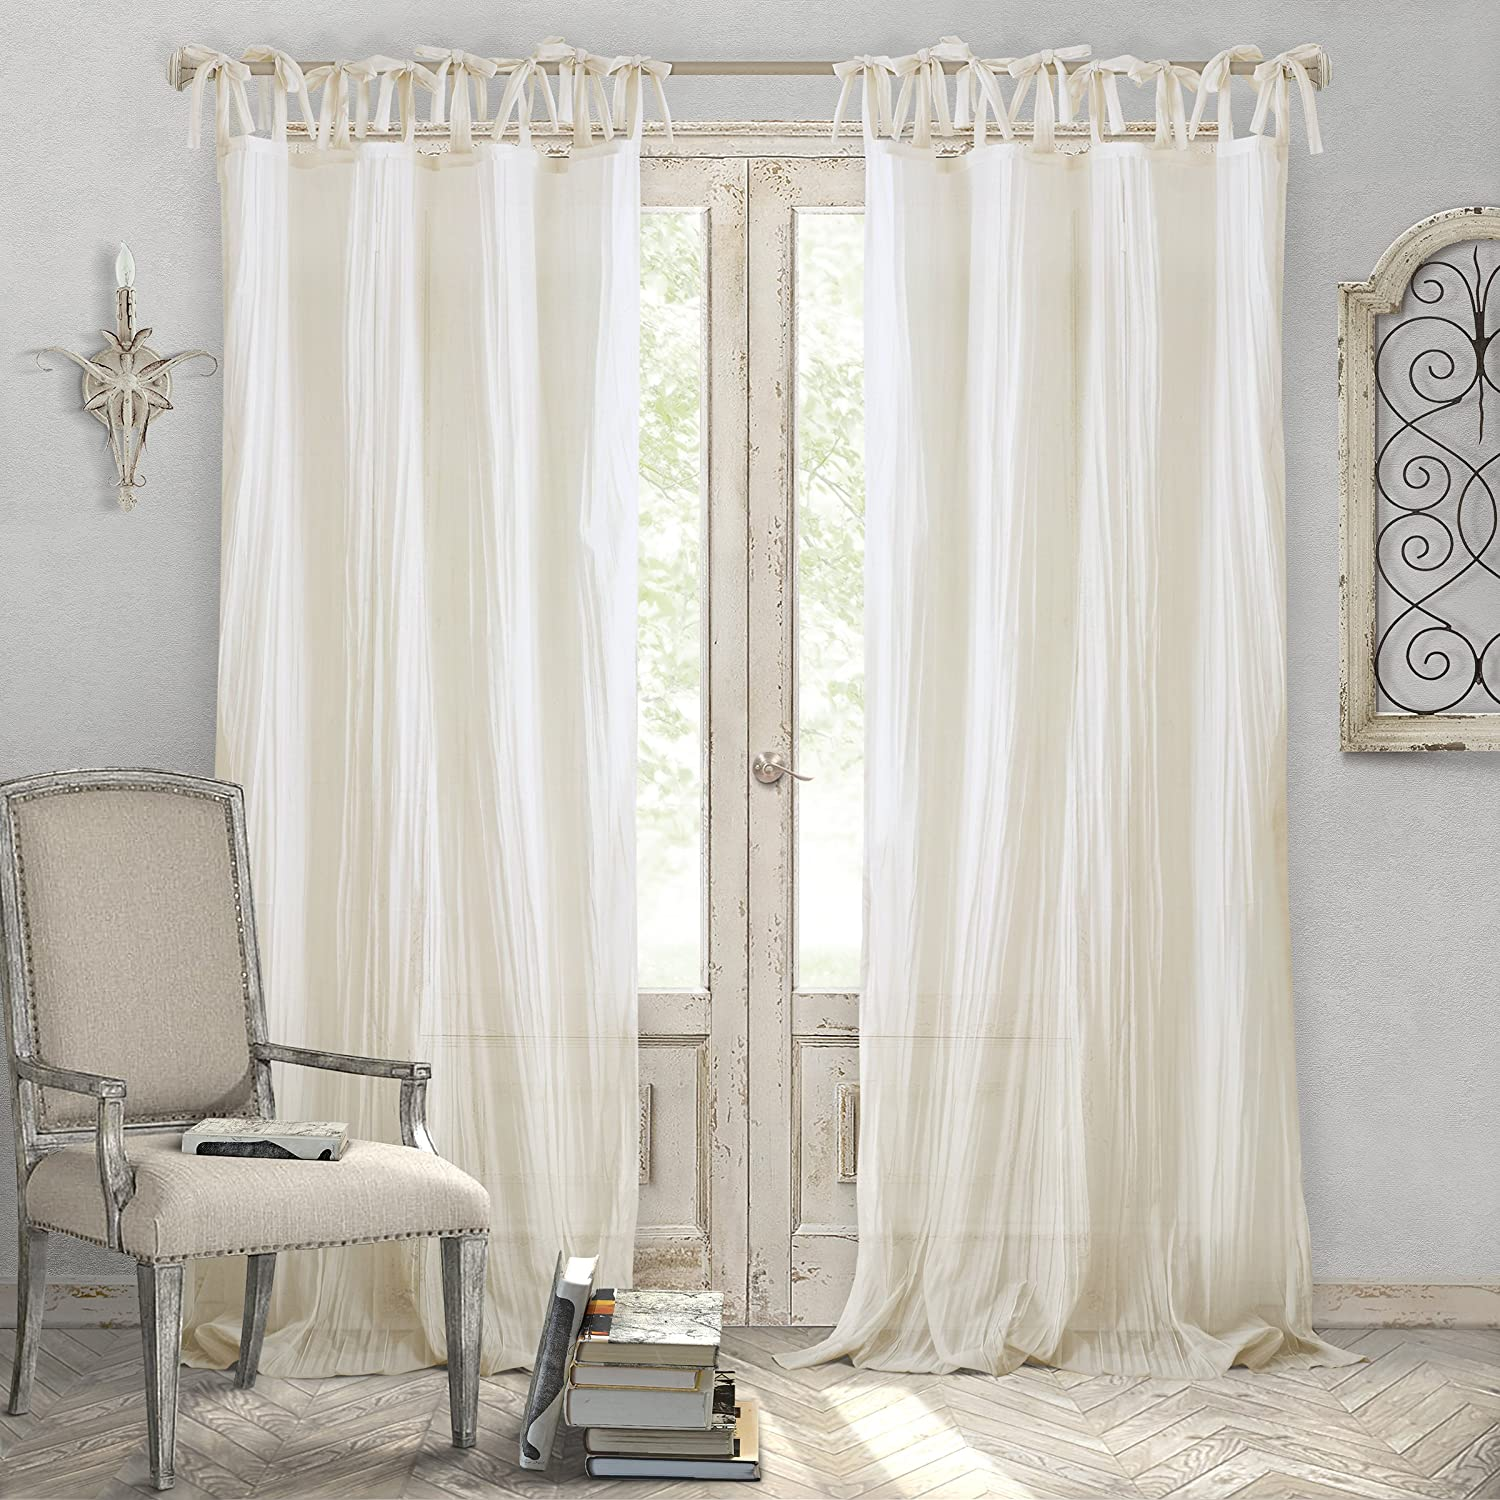 "Elrene Home Fashions Crushed Semi-Sheer Adjustable Tie Top Single Panel Window Curtain Drape, 52"" x 84"" (1, Ivory"